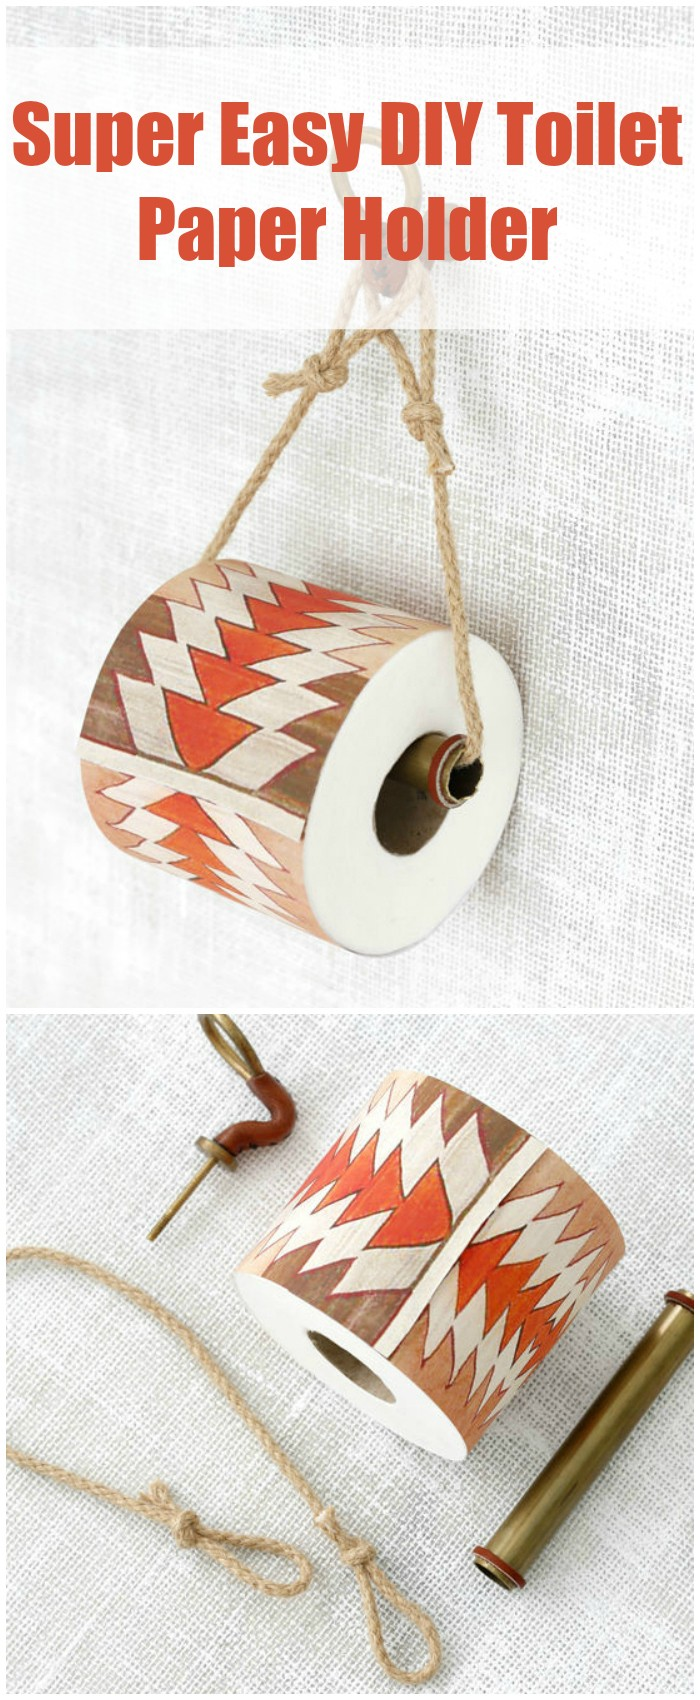 Super Easy DIY Toilet Paper Holder DIY Toilet Paper Holder Ideas   Add Decor To Bathroom